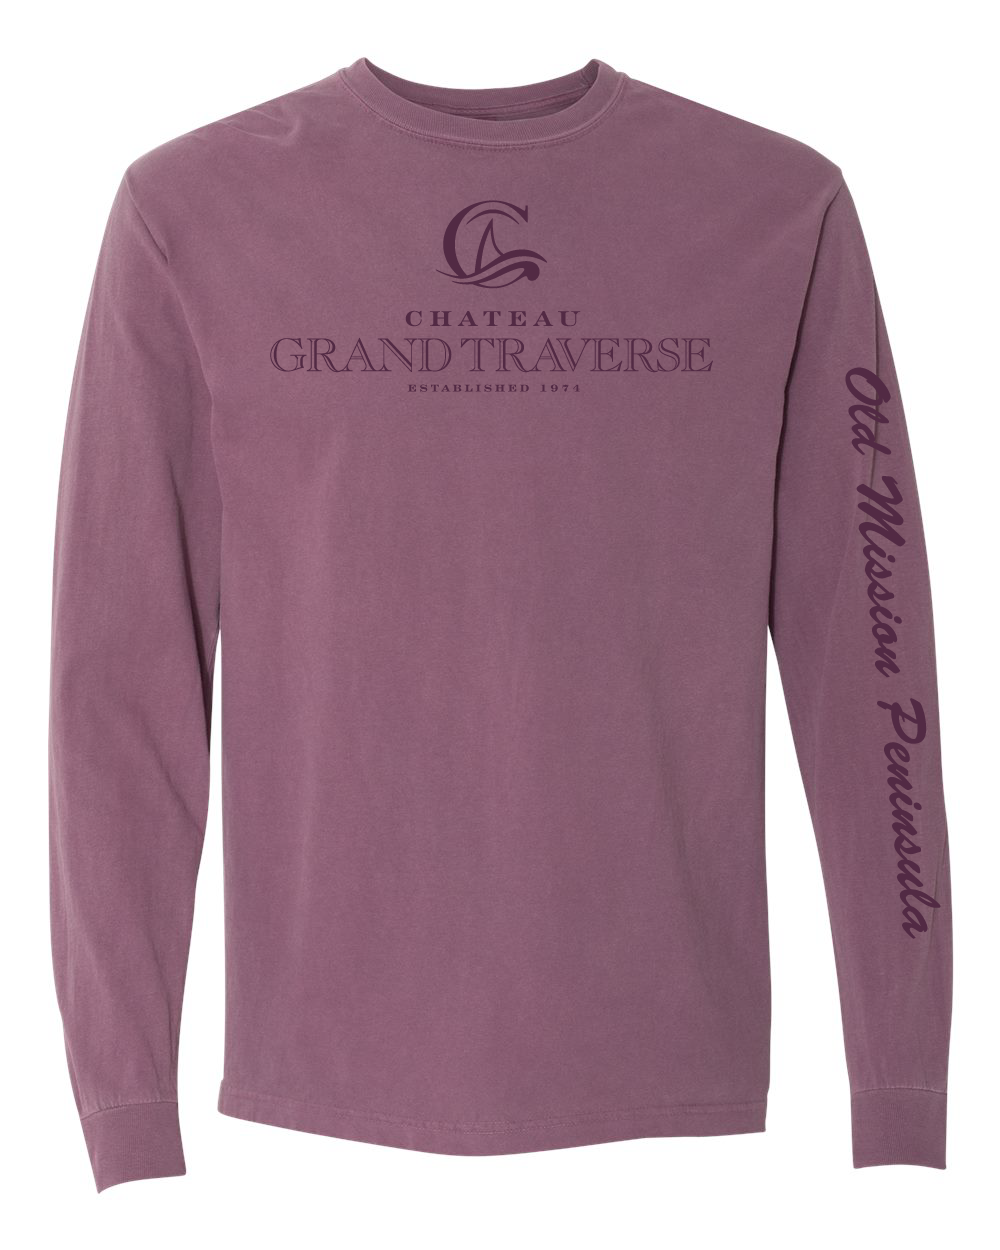 CGT Classic Long Sleeve Tee- Berry